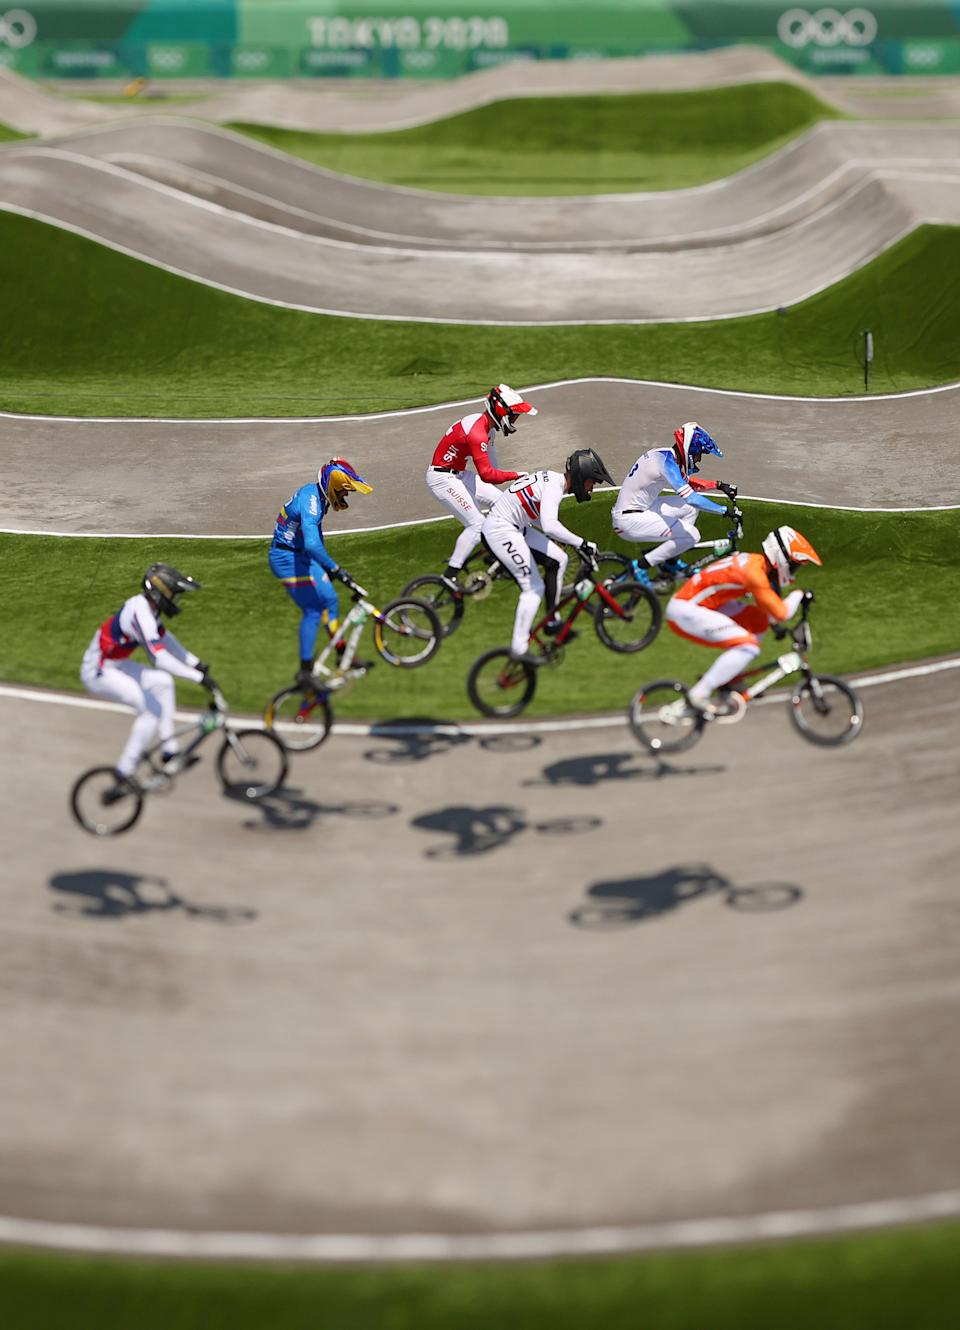 <p>A general view of Joris Harmsen of Team Netherlands, Tore Navrestad of Team Norway, Evgeny Kleshchenko of Team ROC, Vincent Pelluard of Team Colombia, Joris Daudet of Team France and Simon M. Marquart of Team Switzerland as they jump during the Men's BMX quarterfinal heat 3 run 1 on day six of the Tokyo 2020 Olympic Games at Ariake Urban Sports Park on July 29, 2021 in Tokyo, Japan. (Photo by Ezra Shaw/Getty Images)</p>